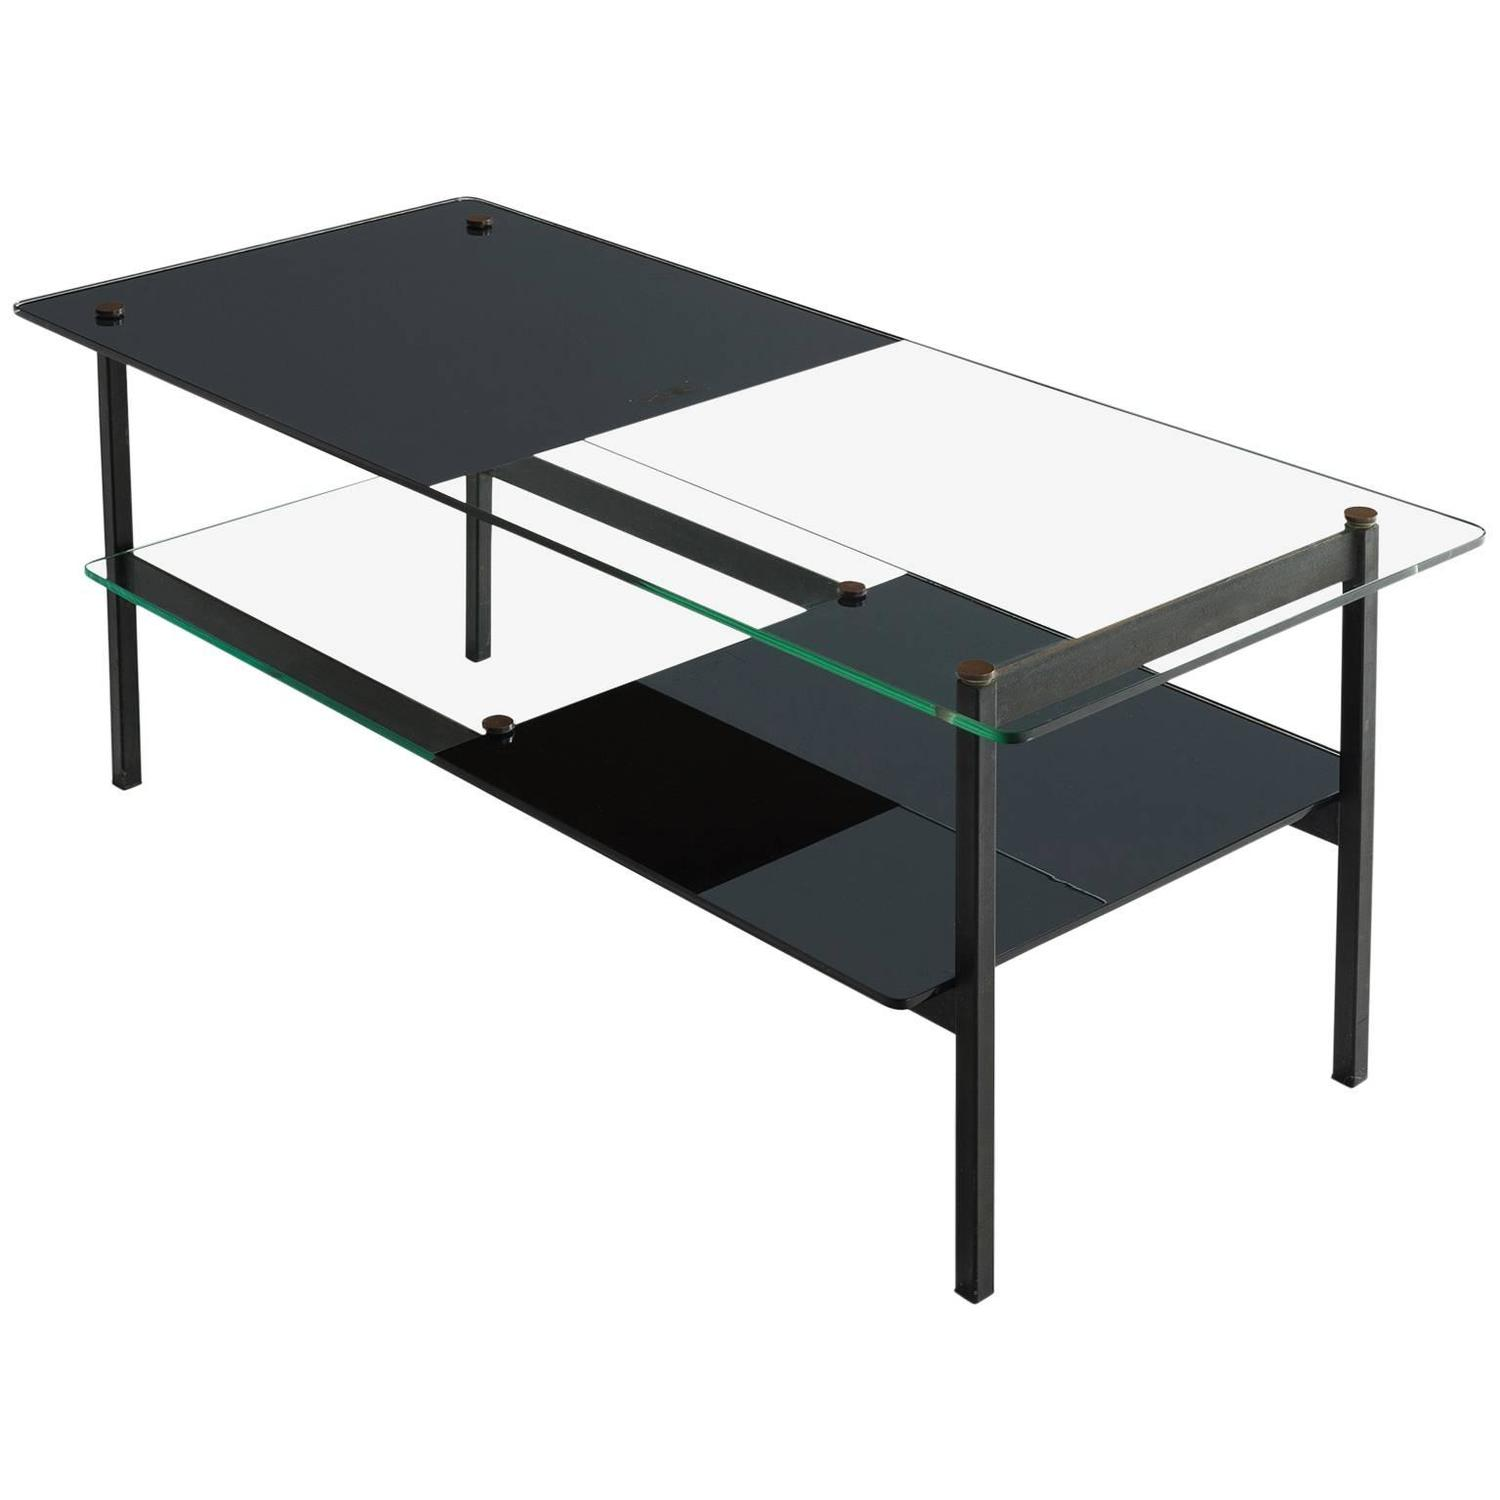 Mid Century Square Steel Coffee Table With Black Marble: Small Mid-Century Coffee Table In Glass And Metal For Sale